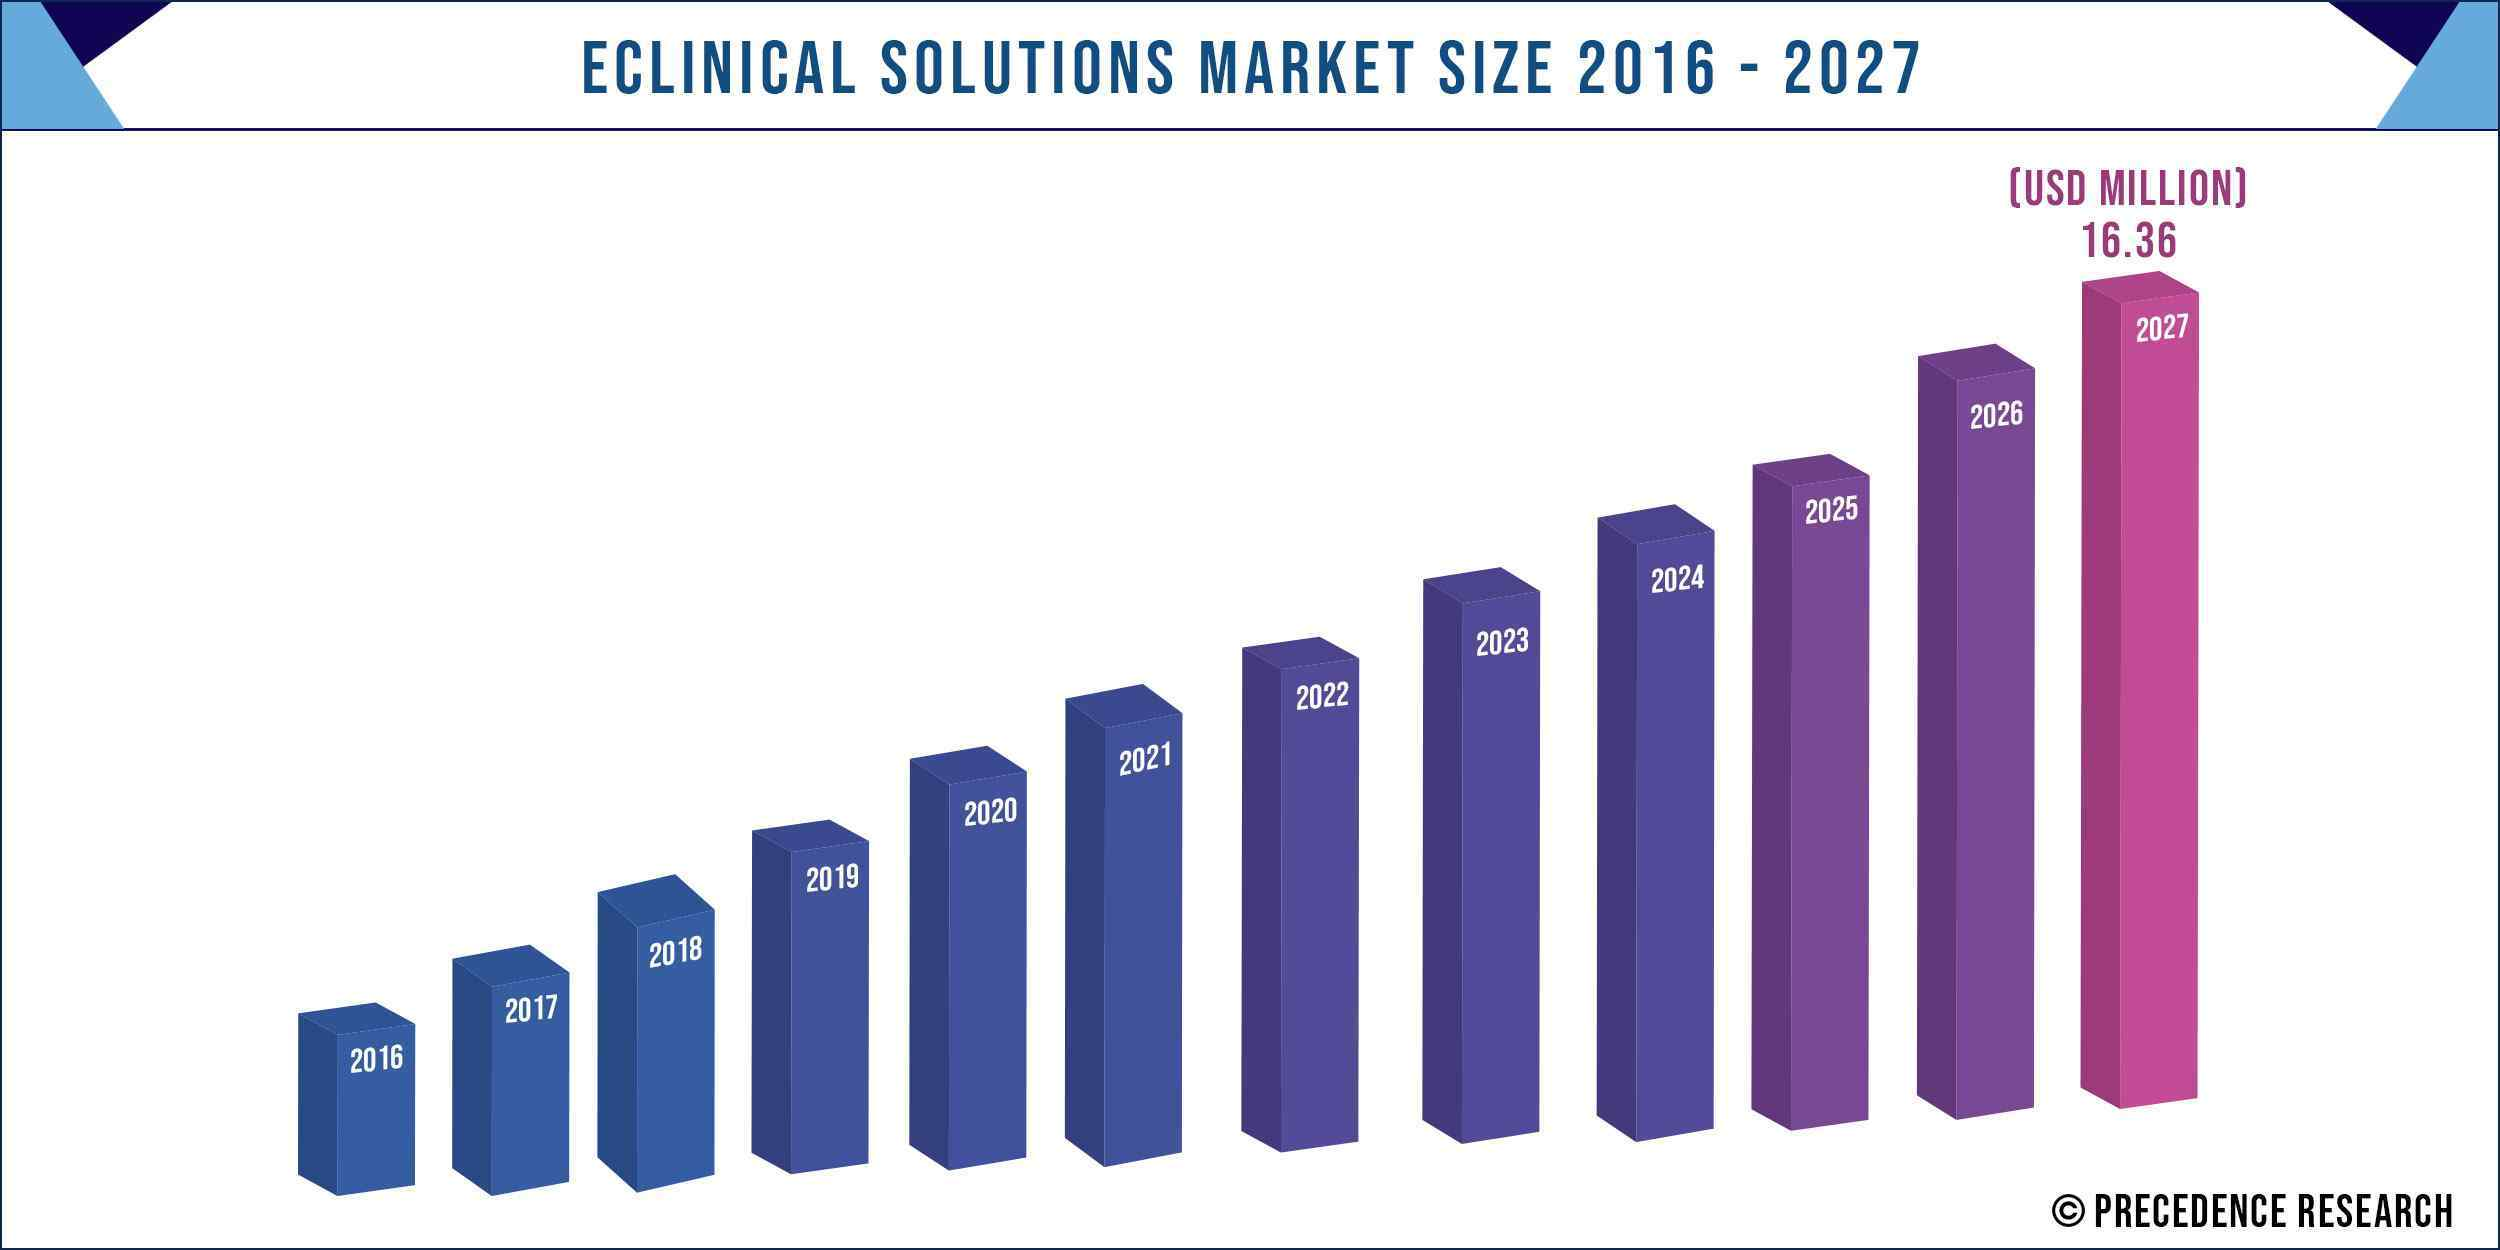 eClinical Solutions Market Size 2016 to 2027